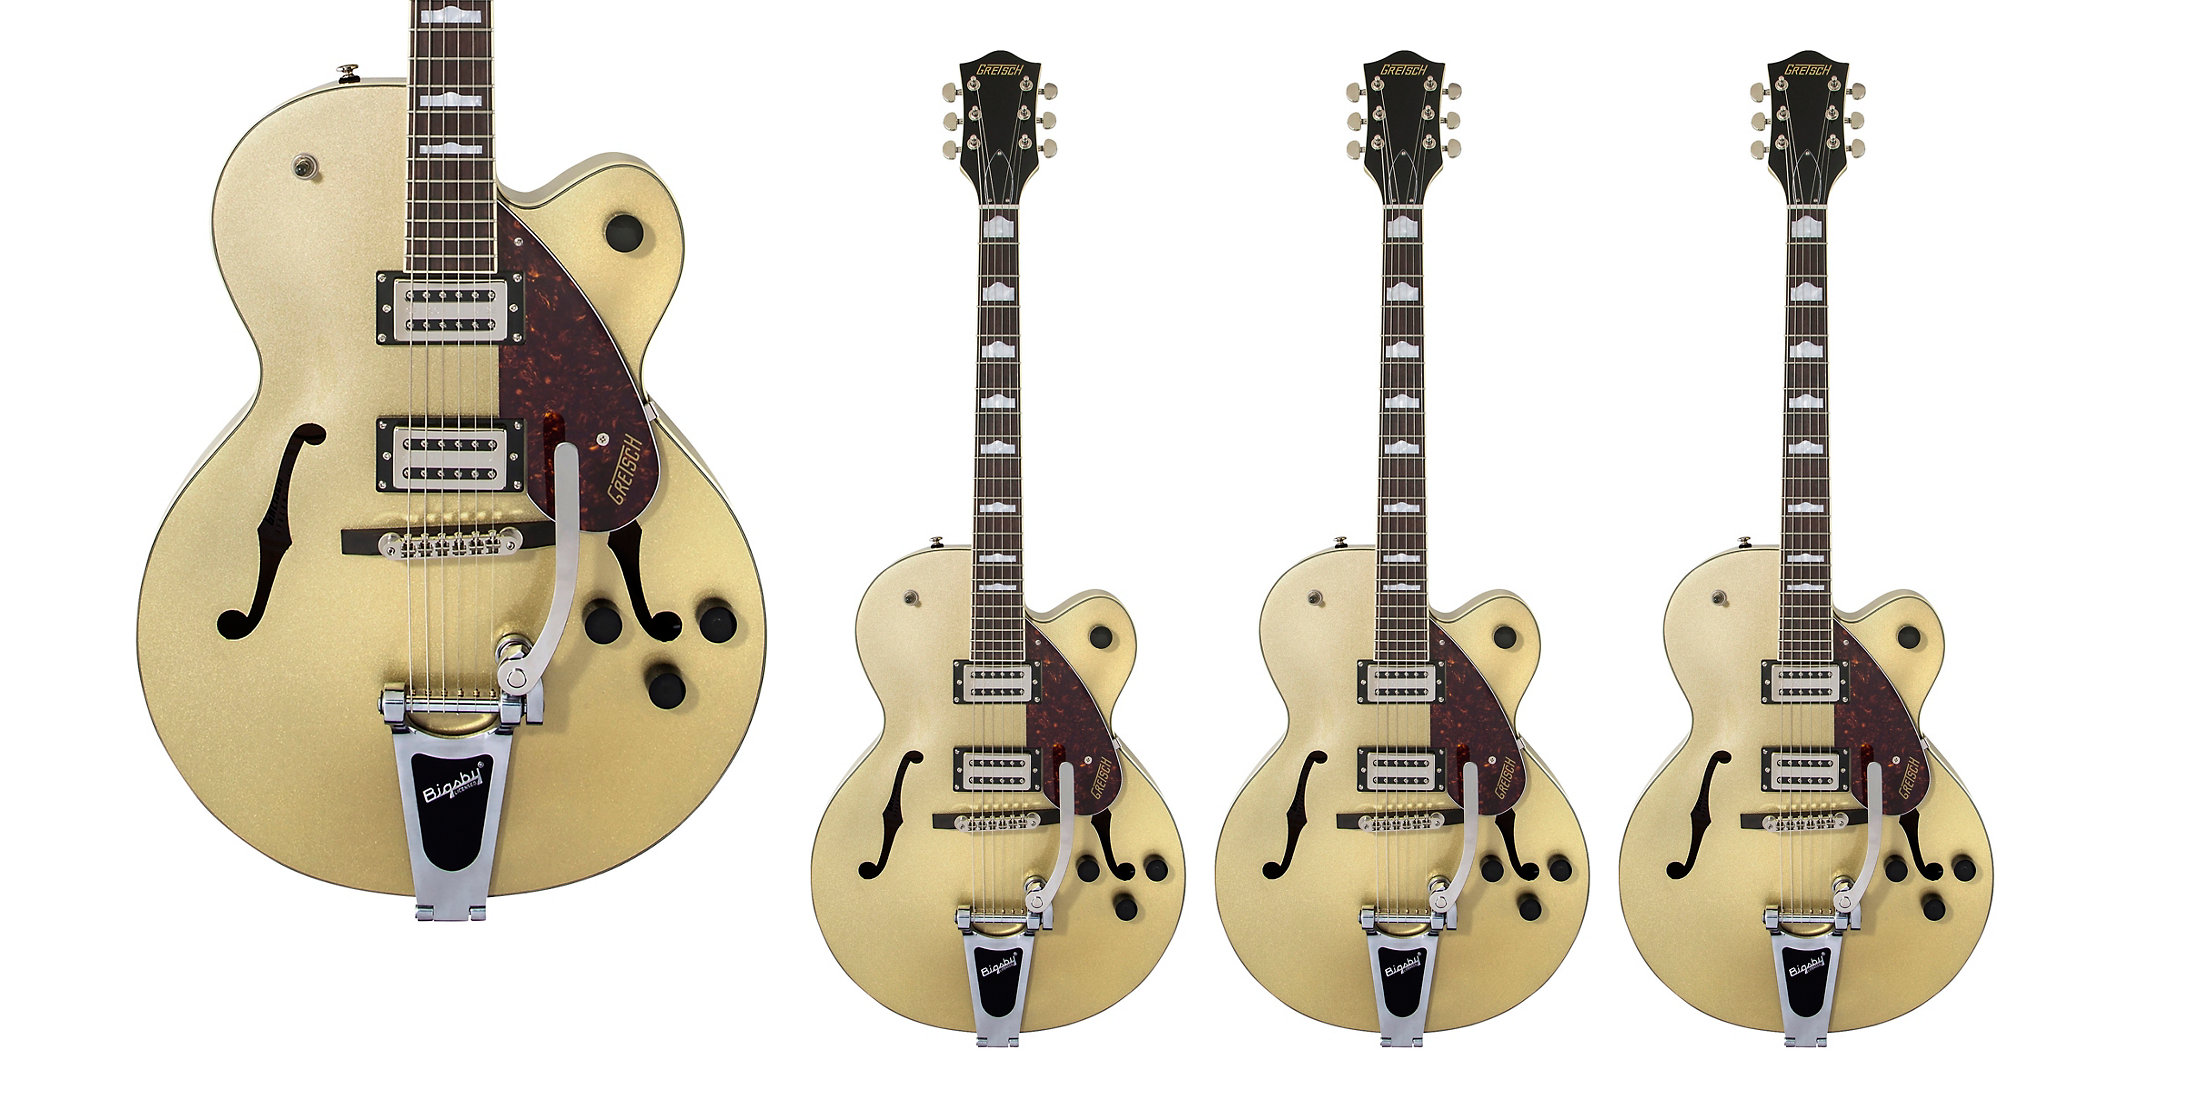 Gretsch's Gold Dust Streamliner Electric Guitar is $230 off today: $320 (Reg. $550+)